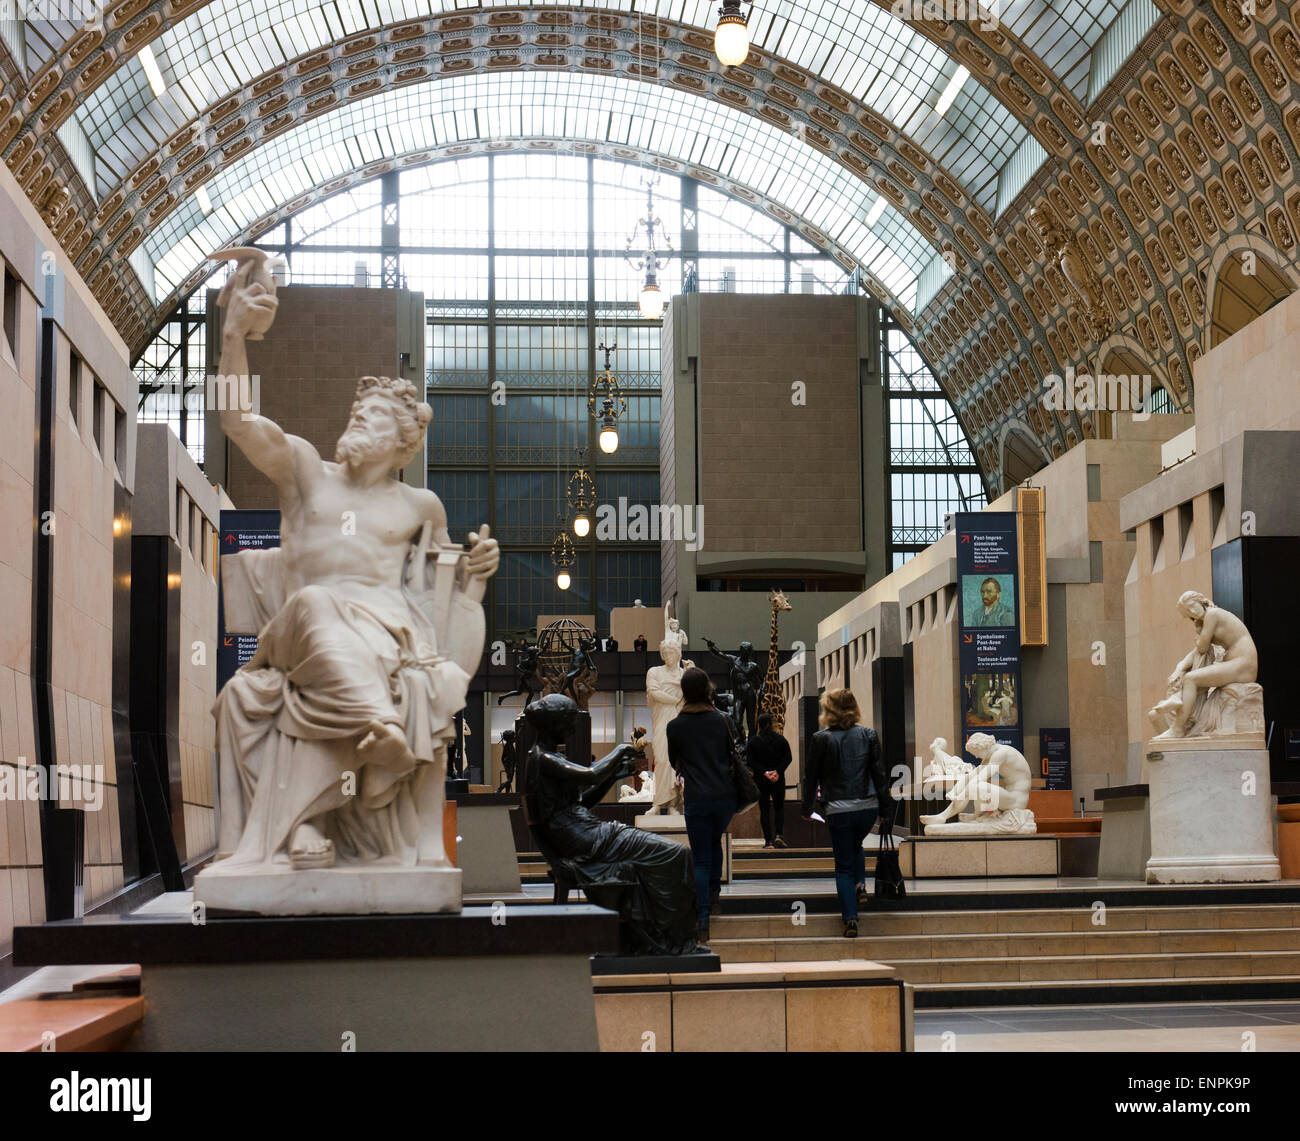 Classic sculptures in Musee d'Orsay, a former railway station. - Stock Image